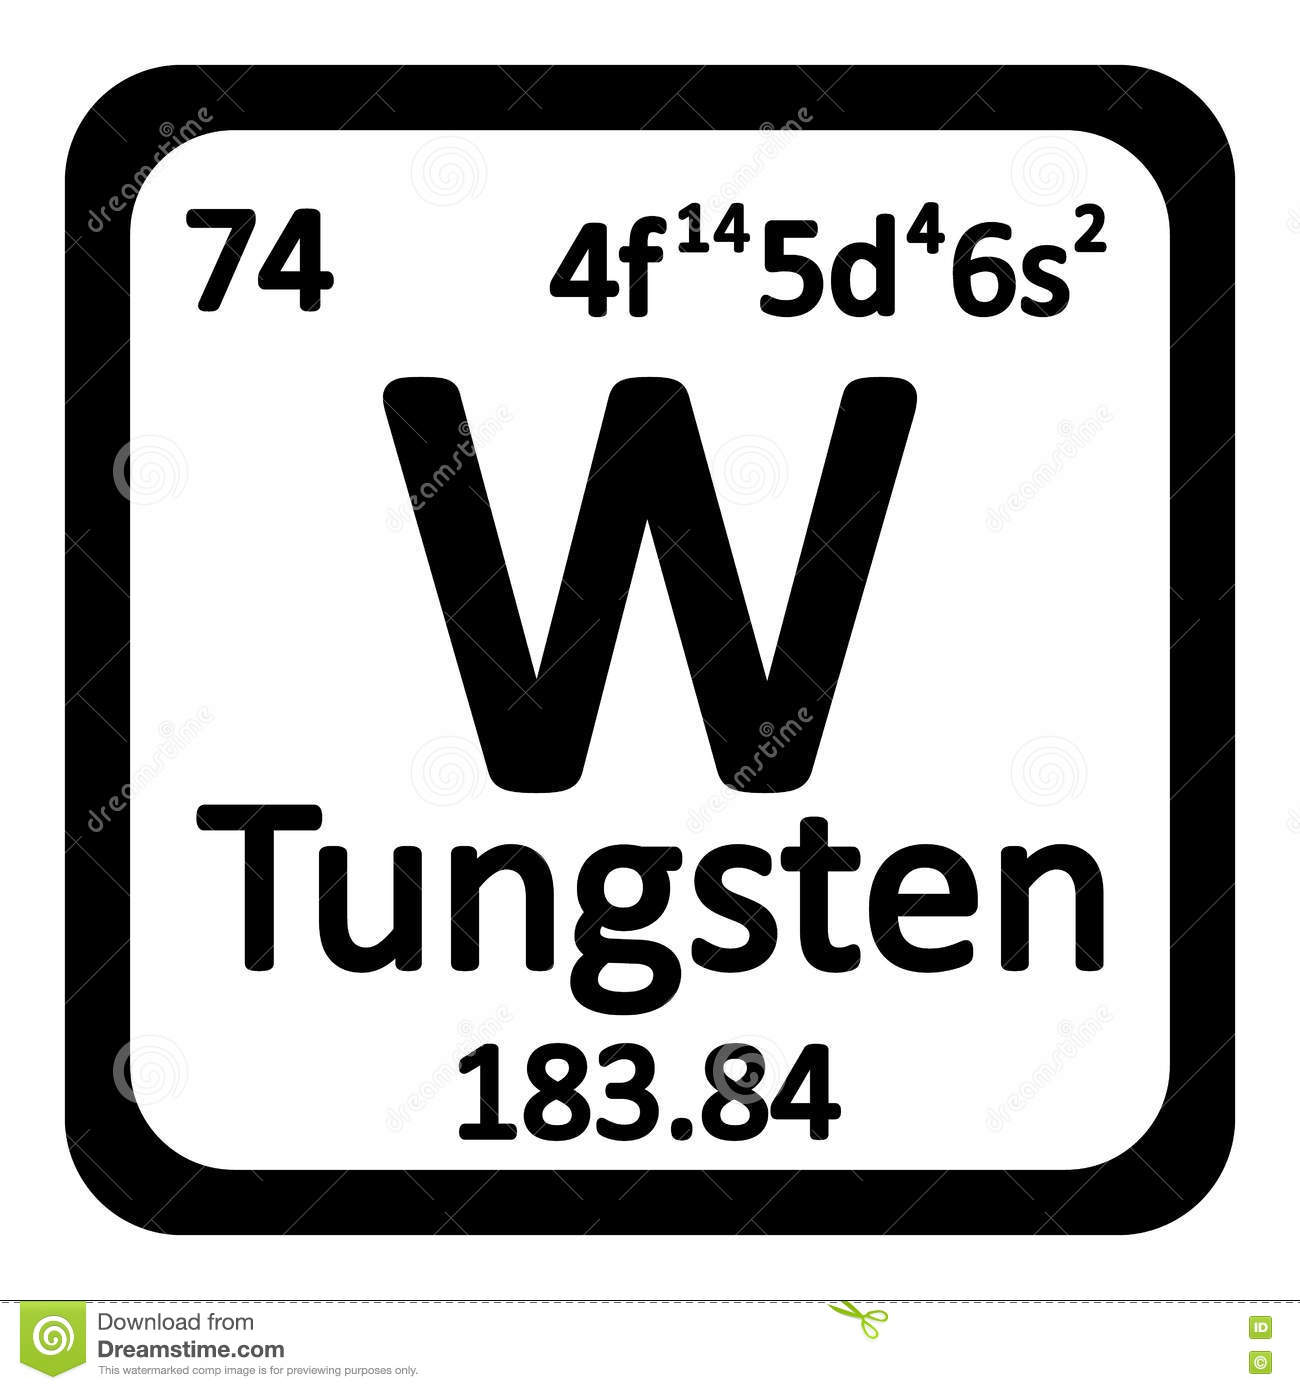 Periodic table element tungsten icon stock illustration - Tungsten symbol periodic table ...